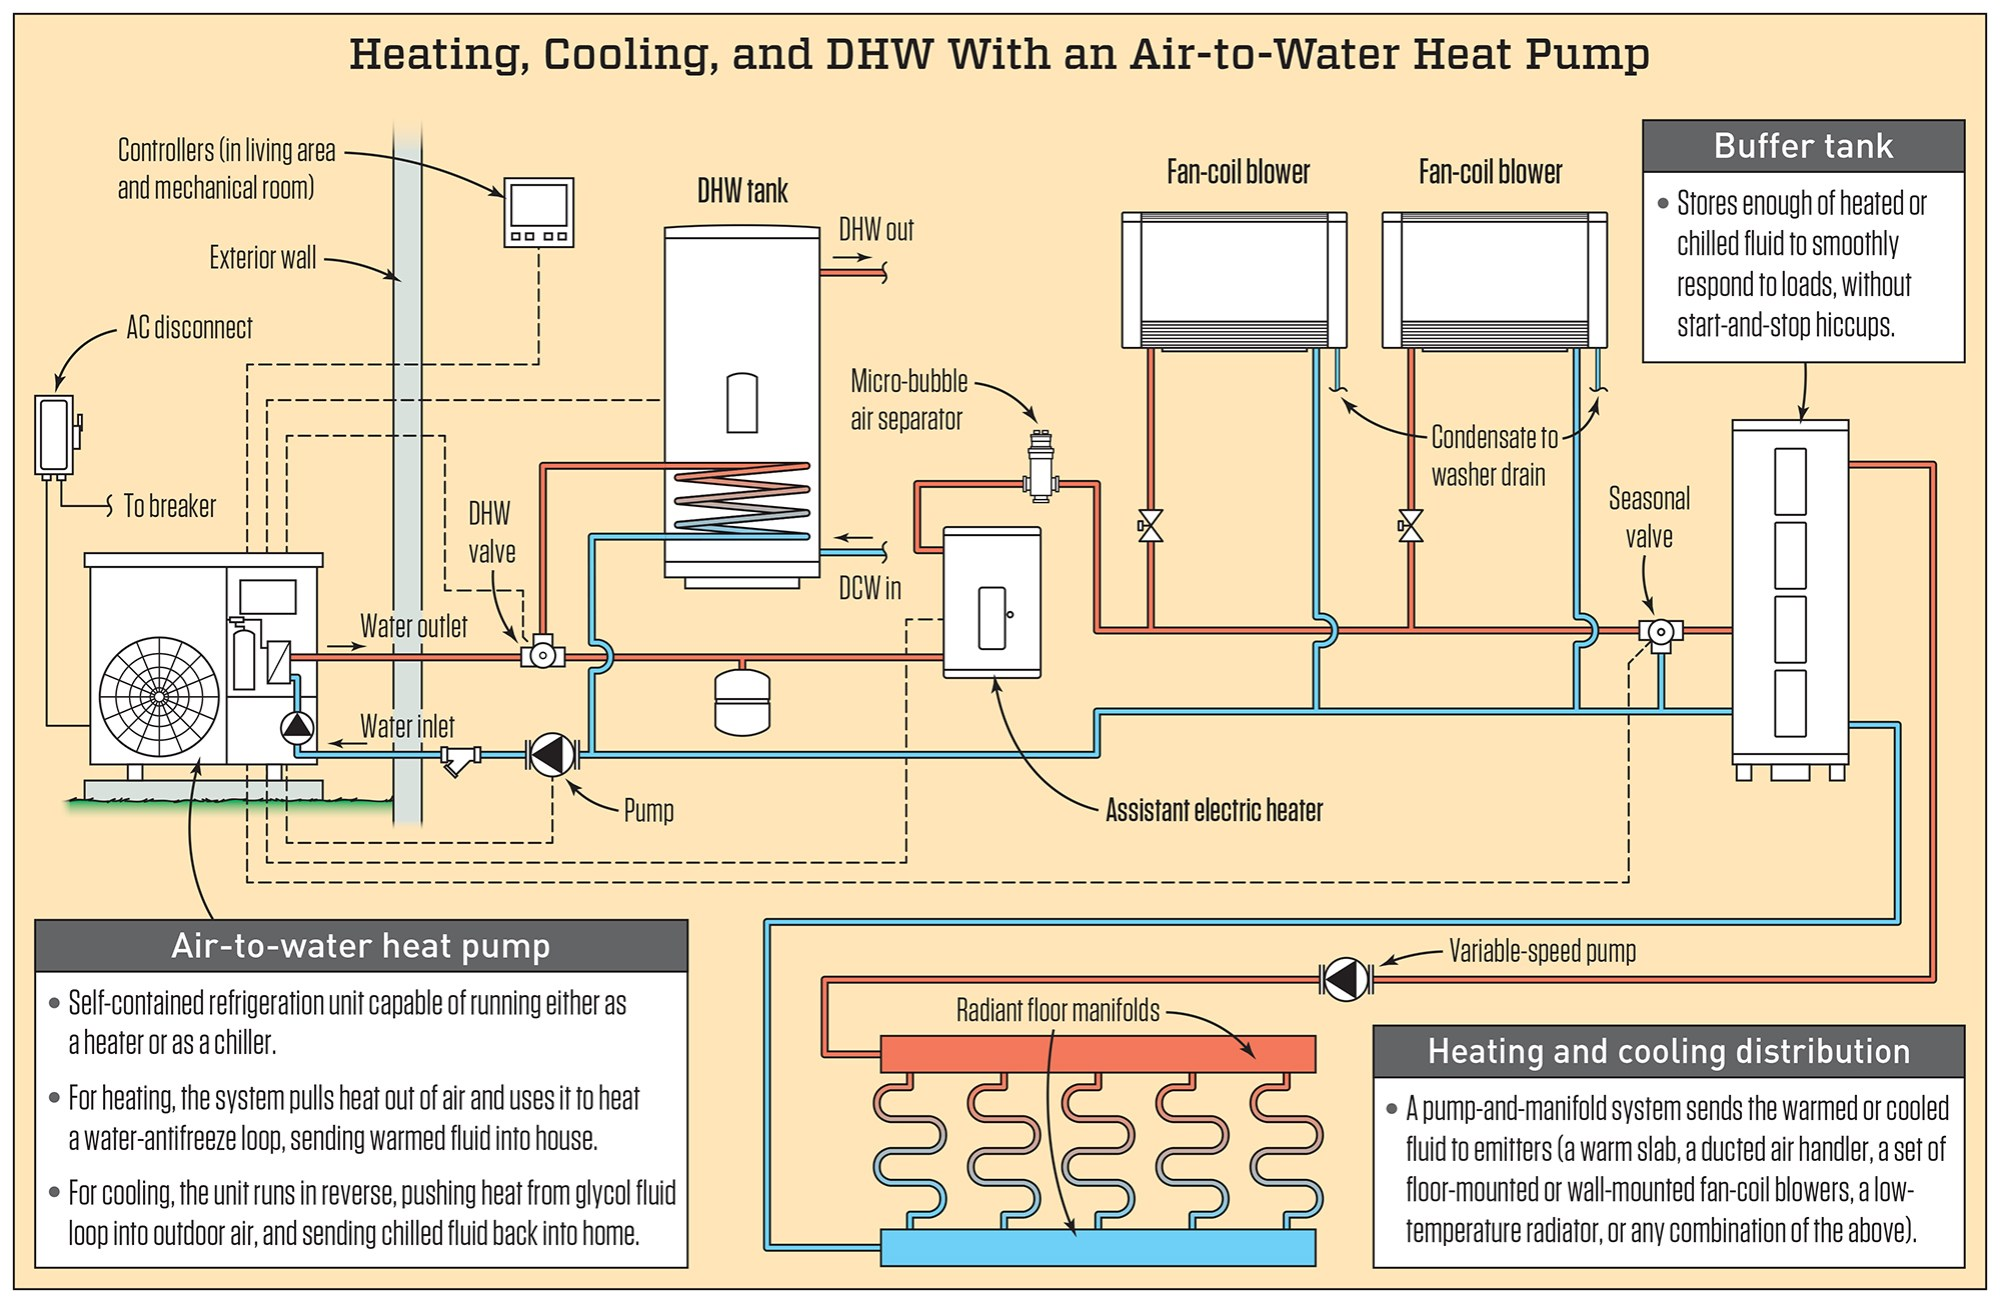 hight resolution of the schematic above shows the primary components of a typical air to water heat pump setup there are many ways to configure a system but in this example